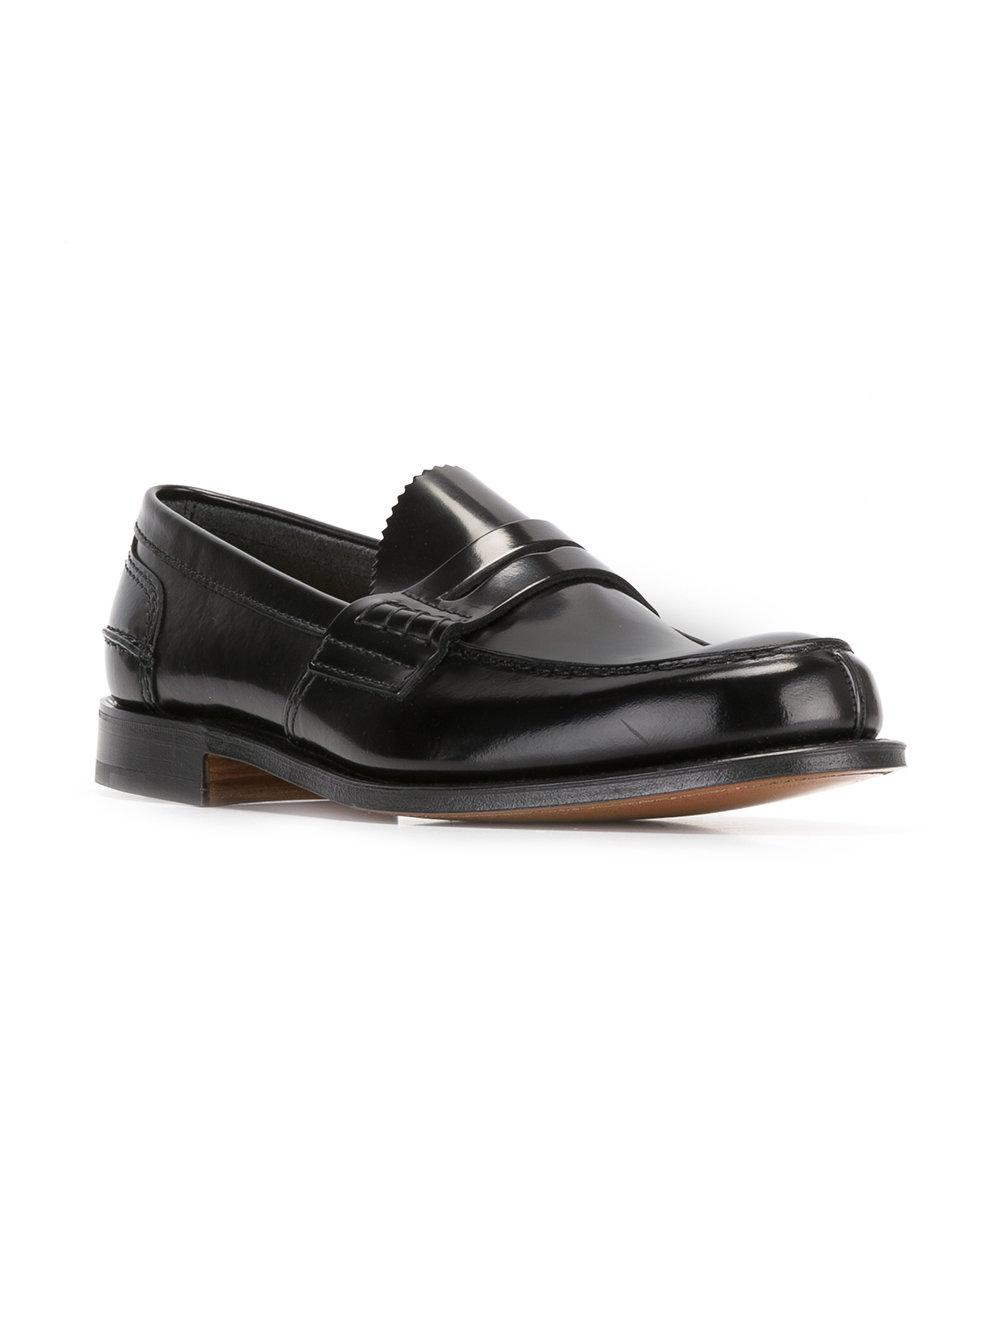 f20be4d8baa Lyst - Church s Tunbridge Leather Loafers in Brown for Men